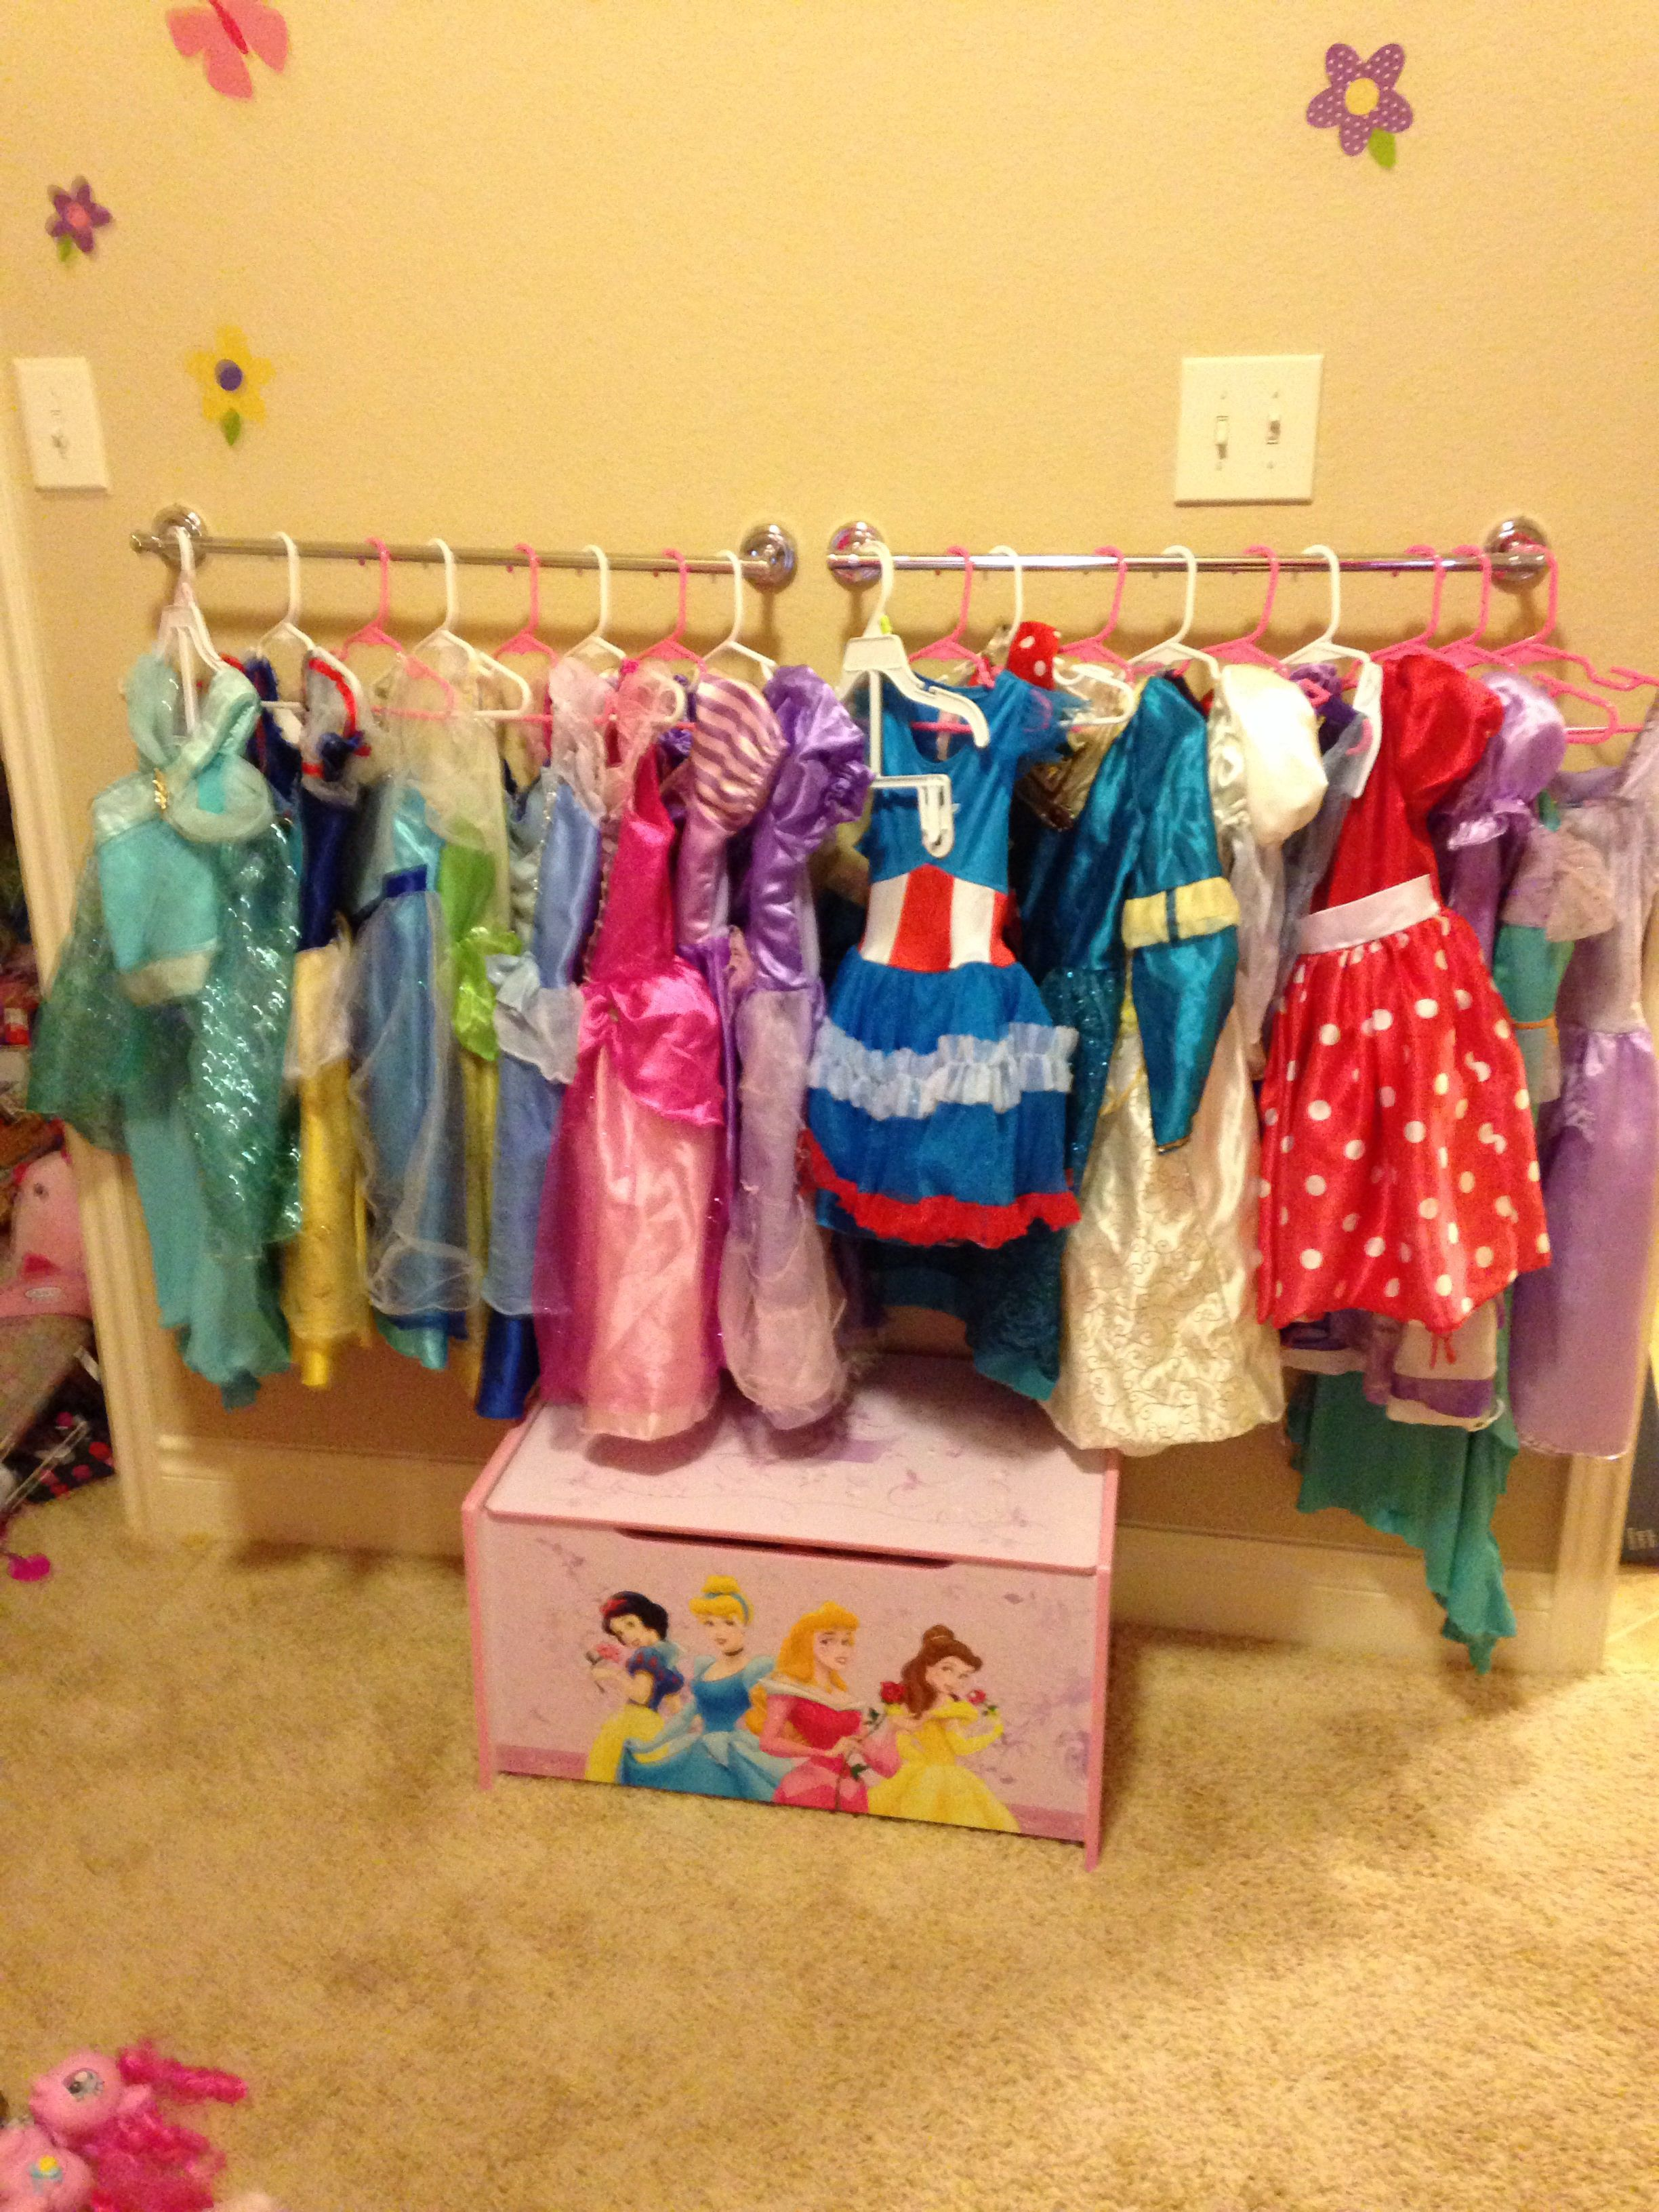 Dress Up Clothes Storage Never Thought About Towel Racks